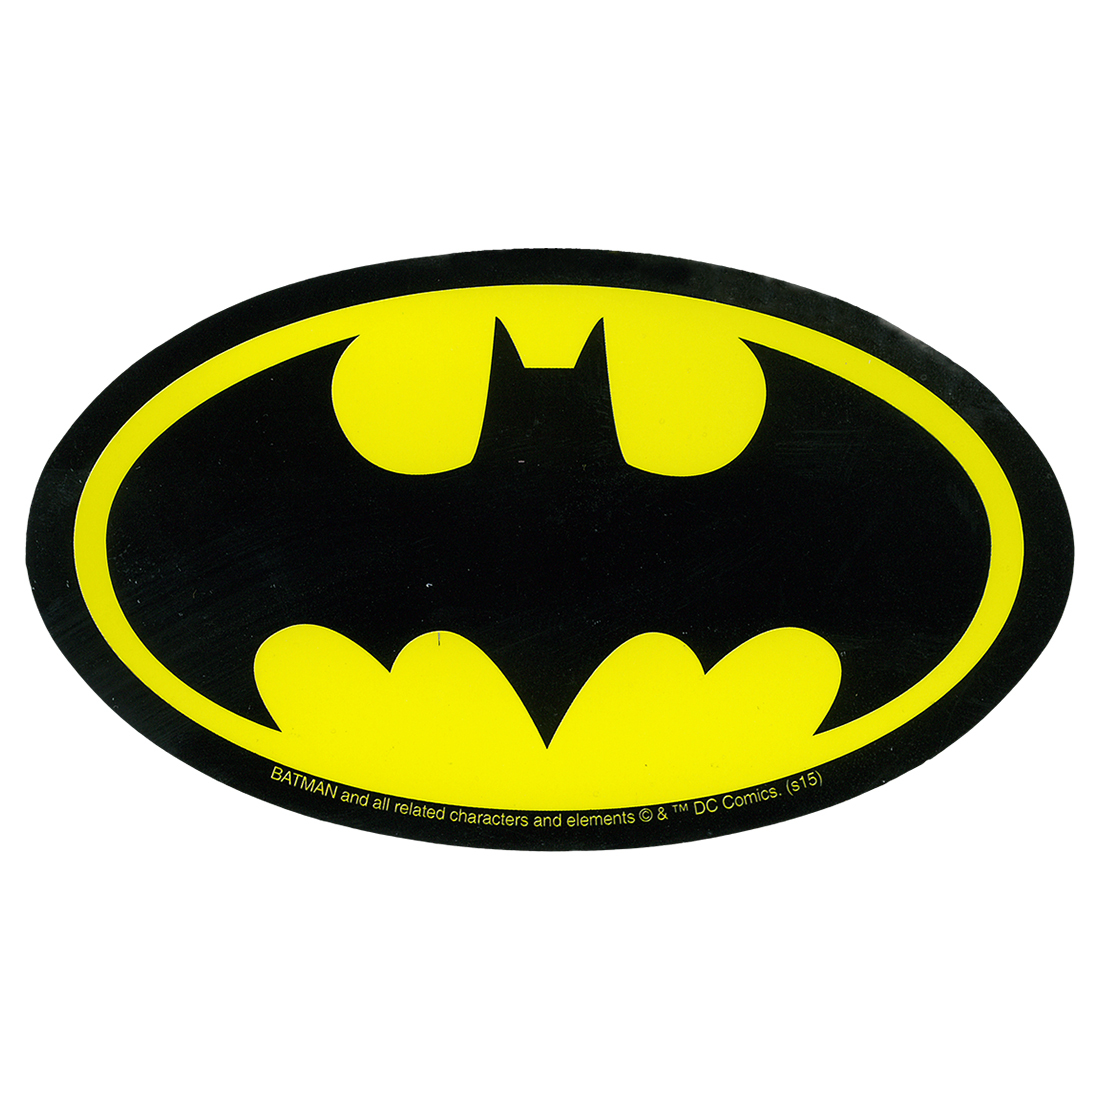 Free Comic Book Day Logo: Batman Logo Sticker Liquid Blue